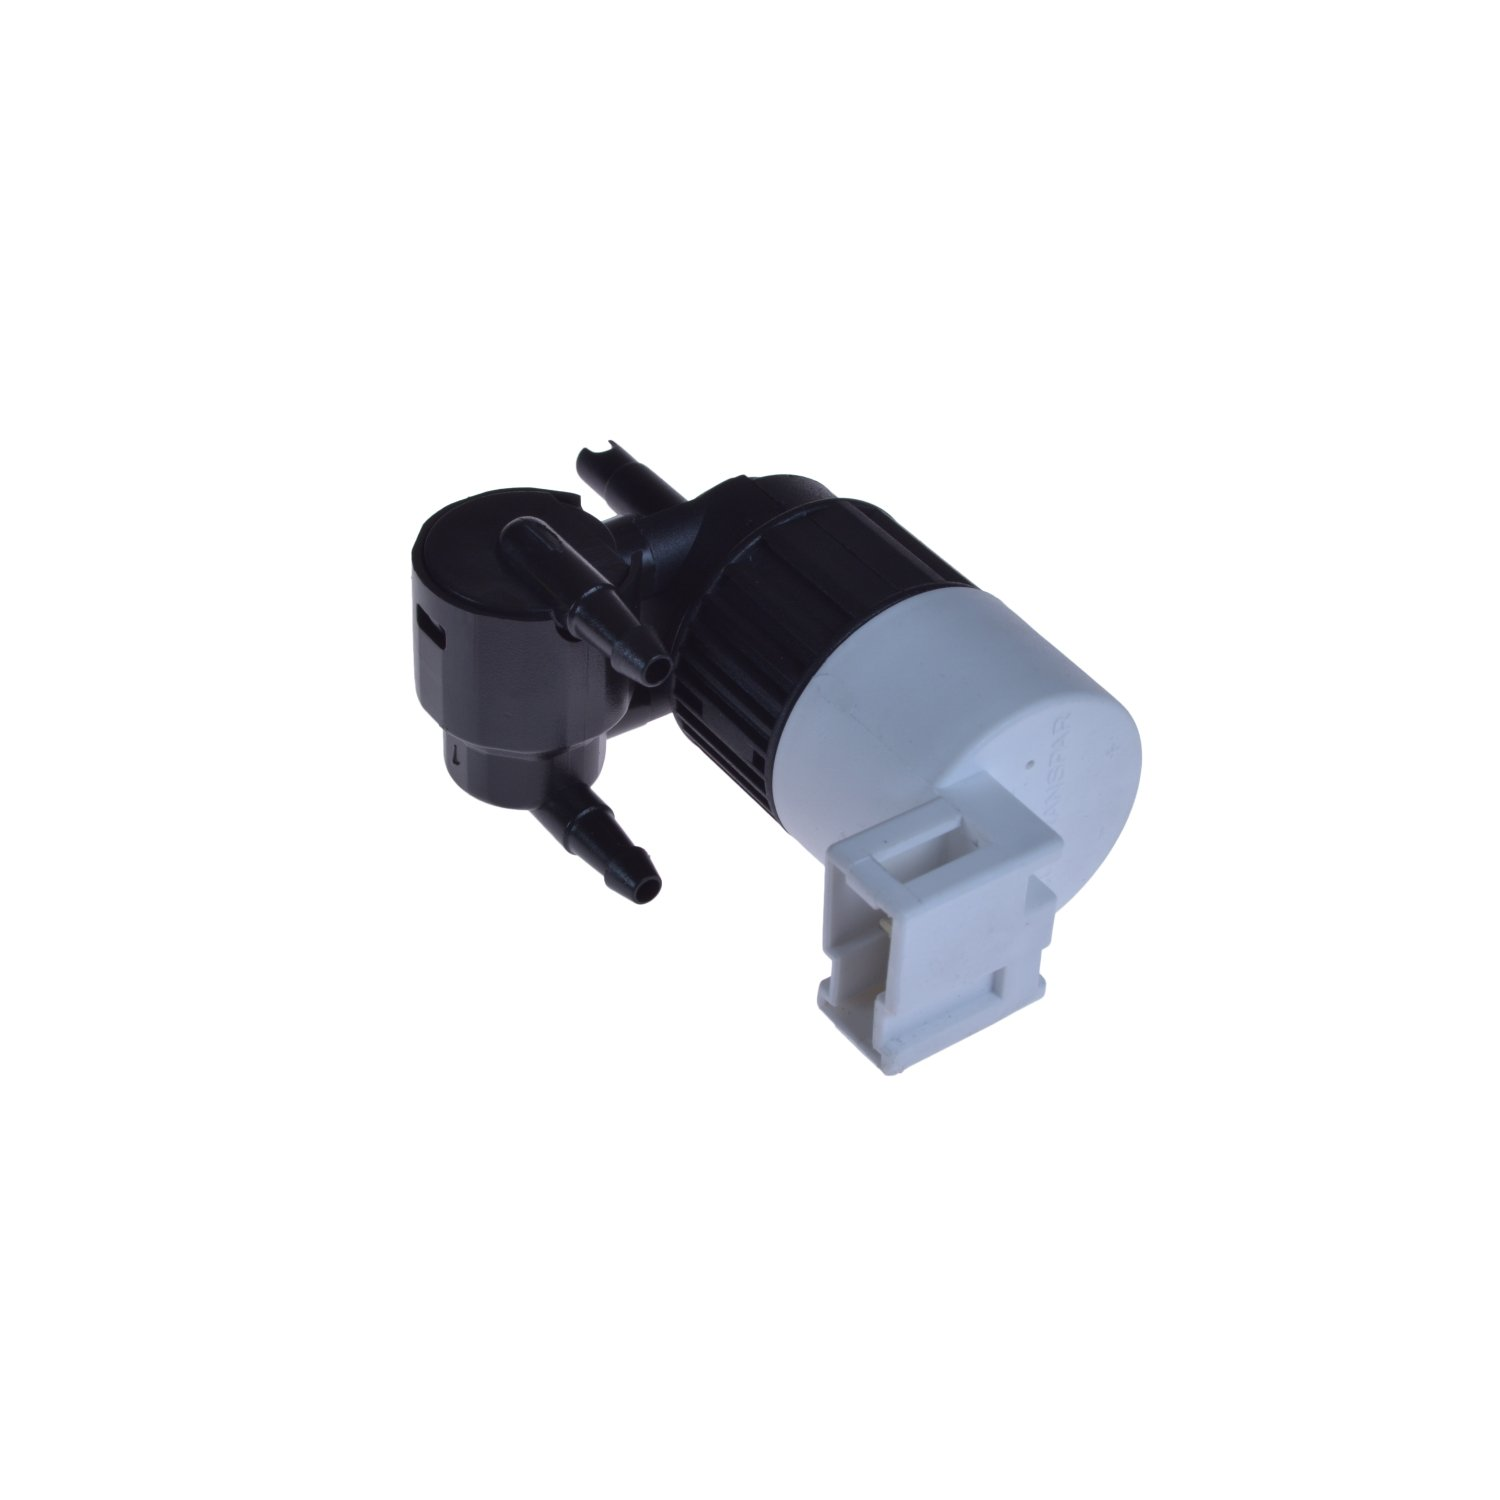 Blue Print ADN10324 washer pump for windscreen washing system - Pack of 1